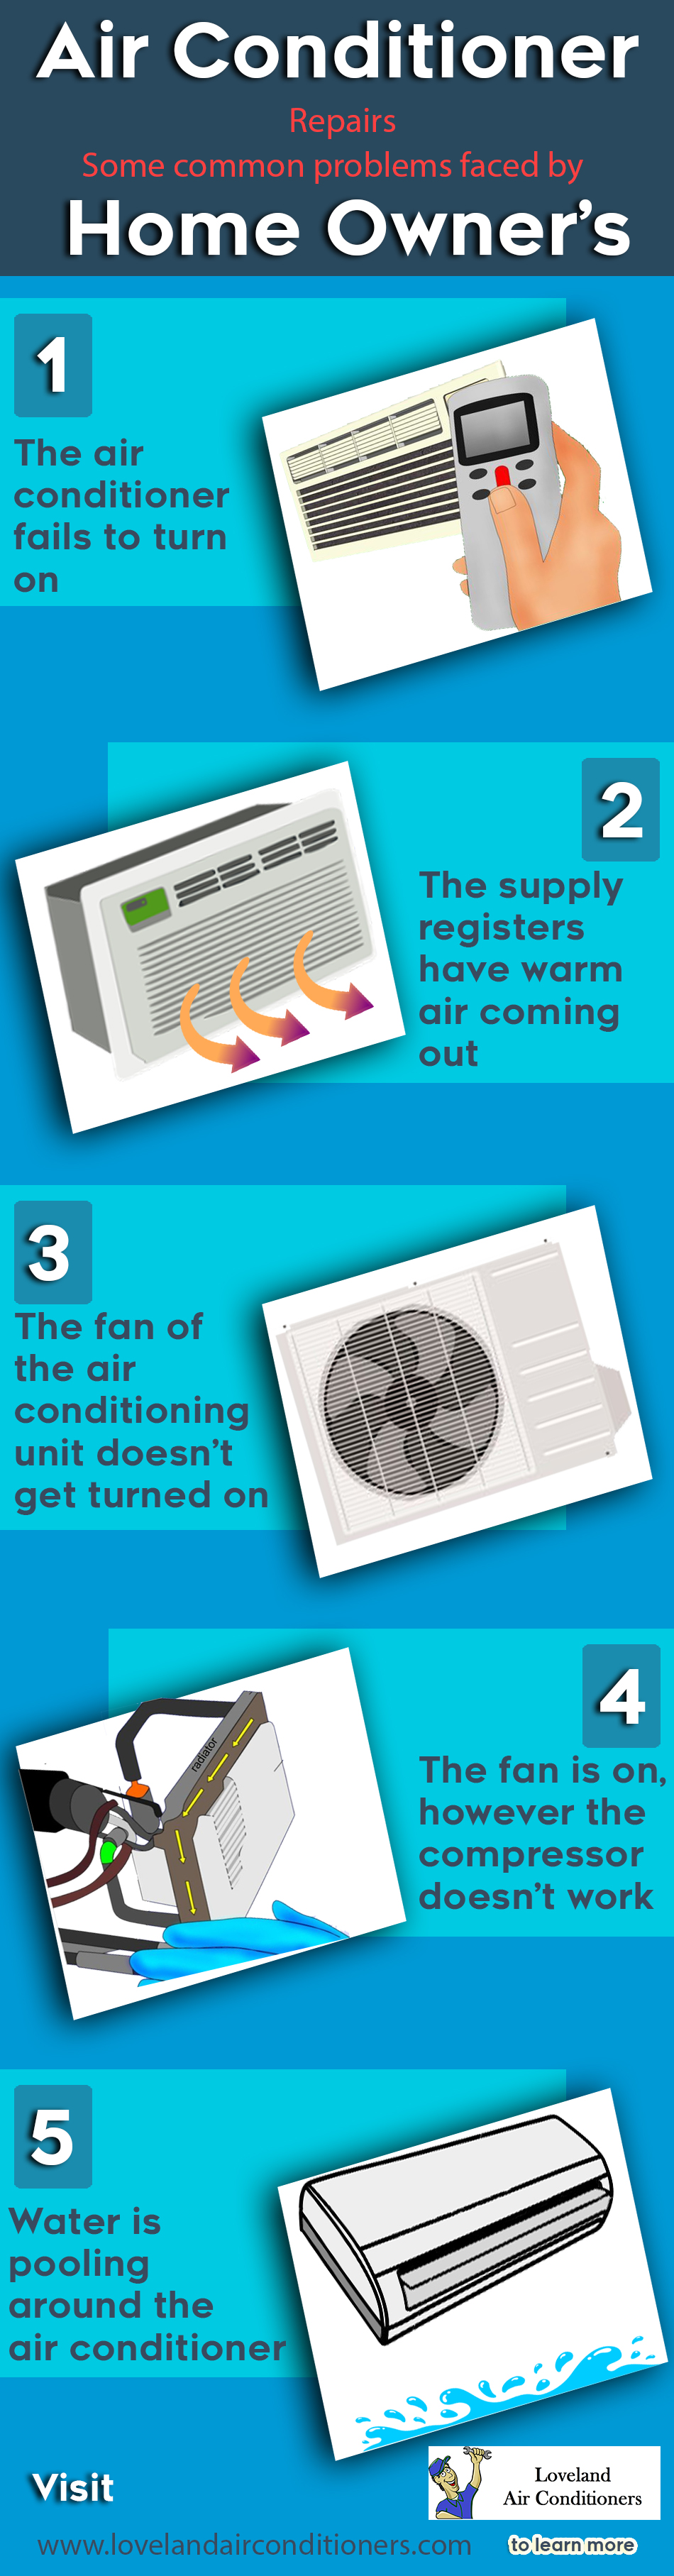 Air Conditioners Repairs